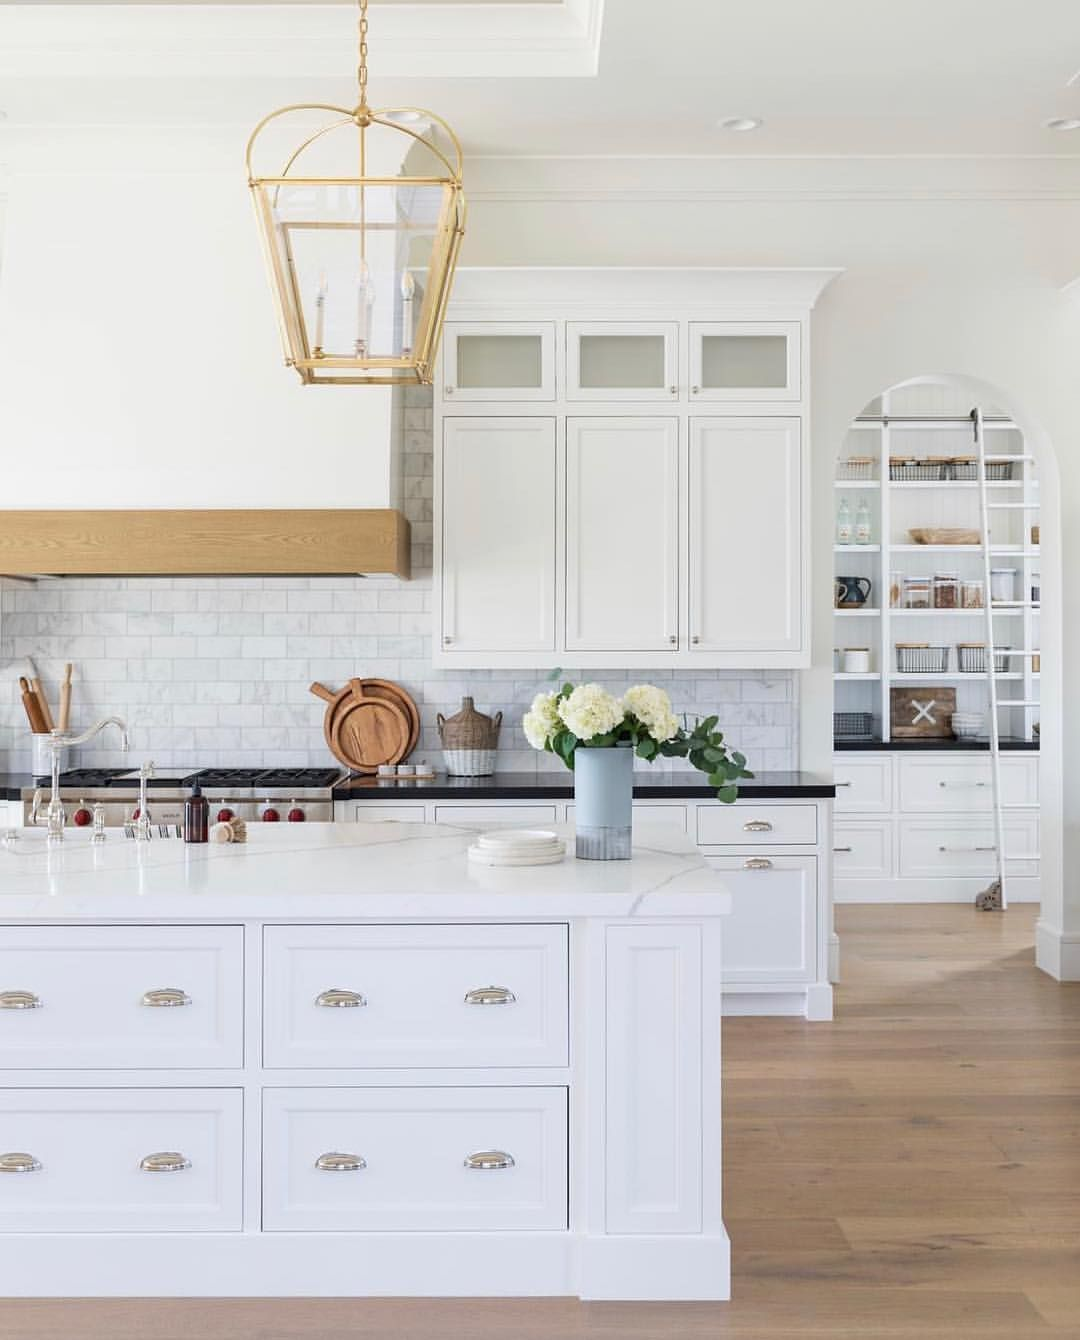 𝑺𝒖𝒔𝒂𝒏𝒏𝒂 on instagram ucmy oh my how about this kitchen